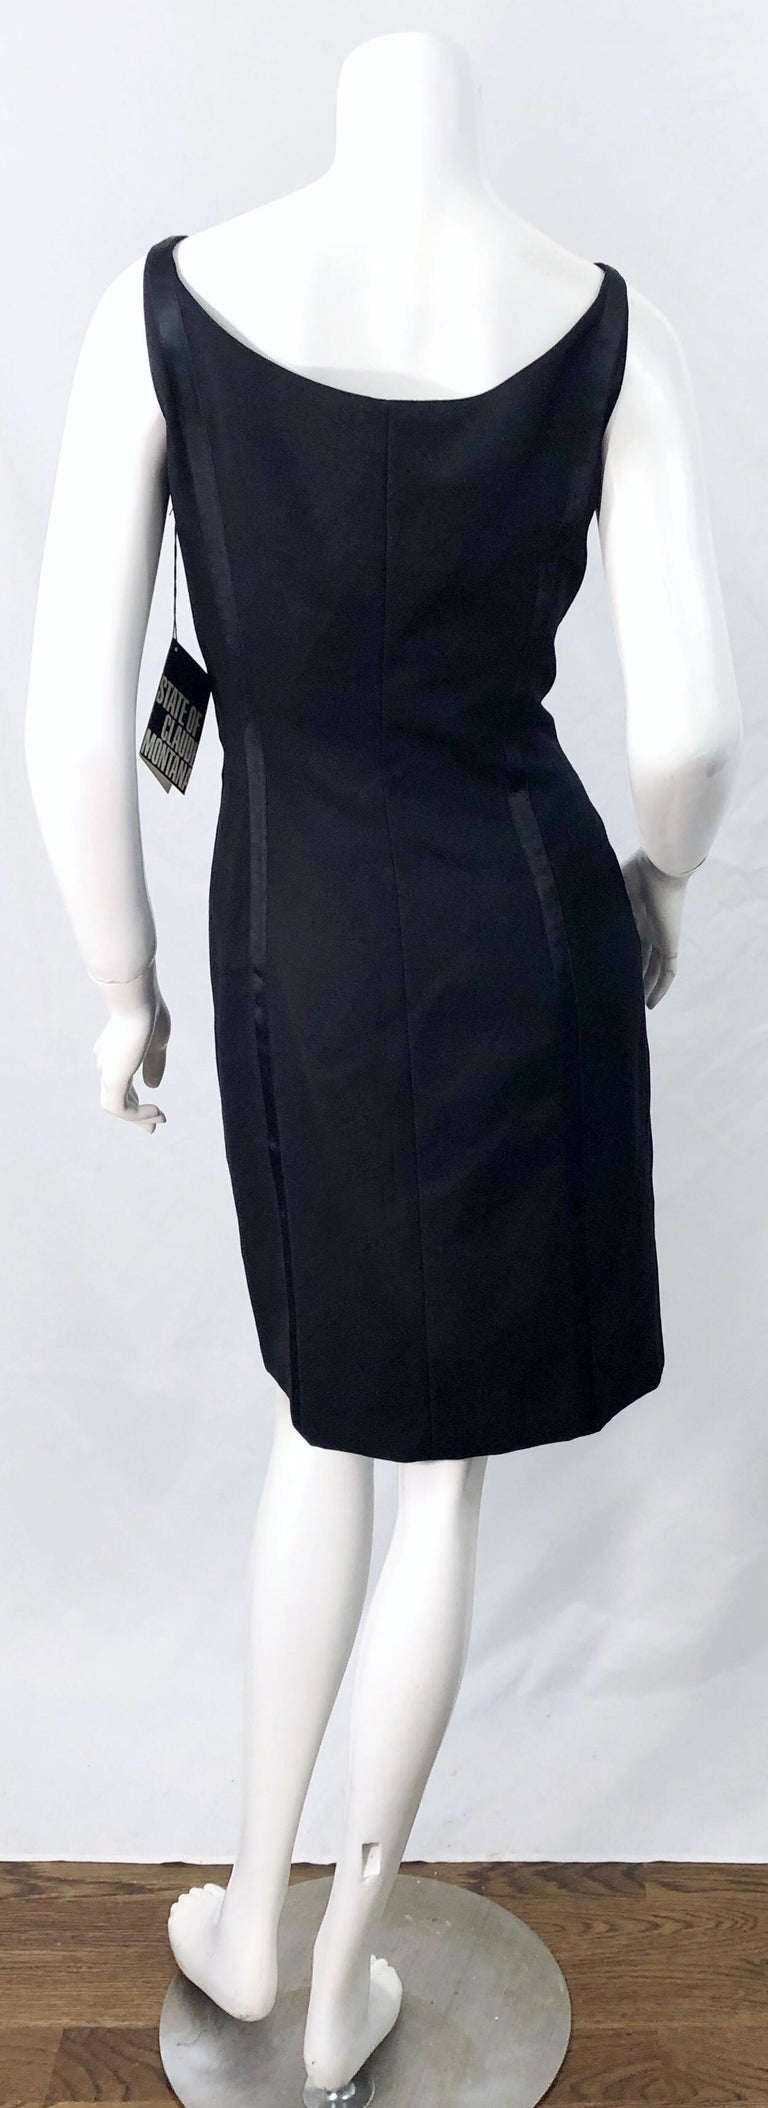 NWT 1990s Claude Montana Size 6 Vintage 90s Sleeveless Little Black Dress  For Sale 9